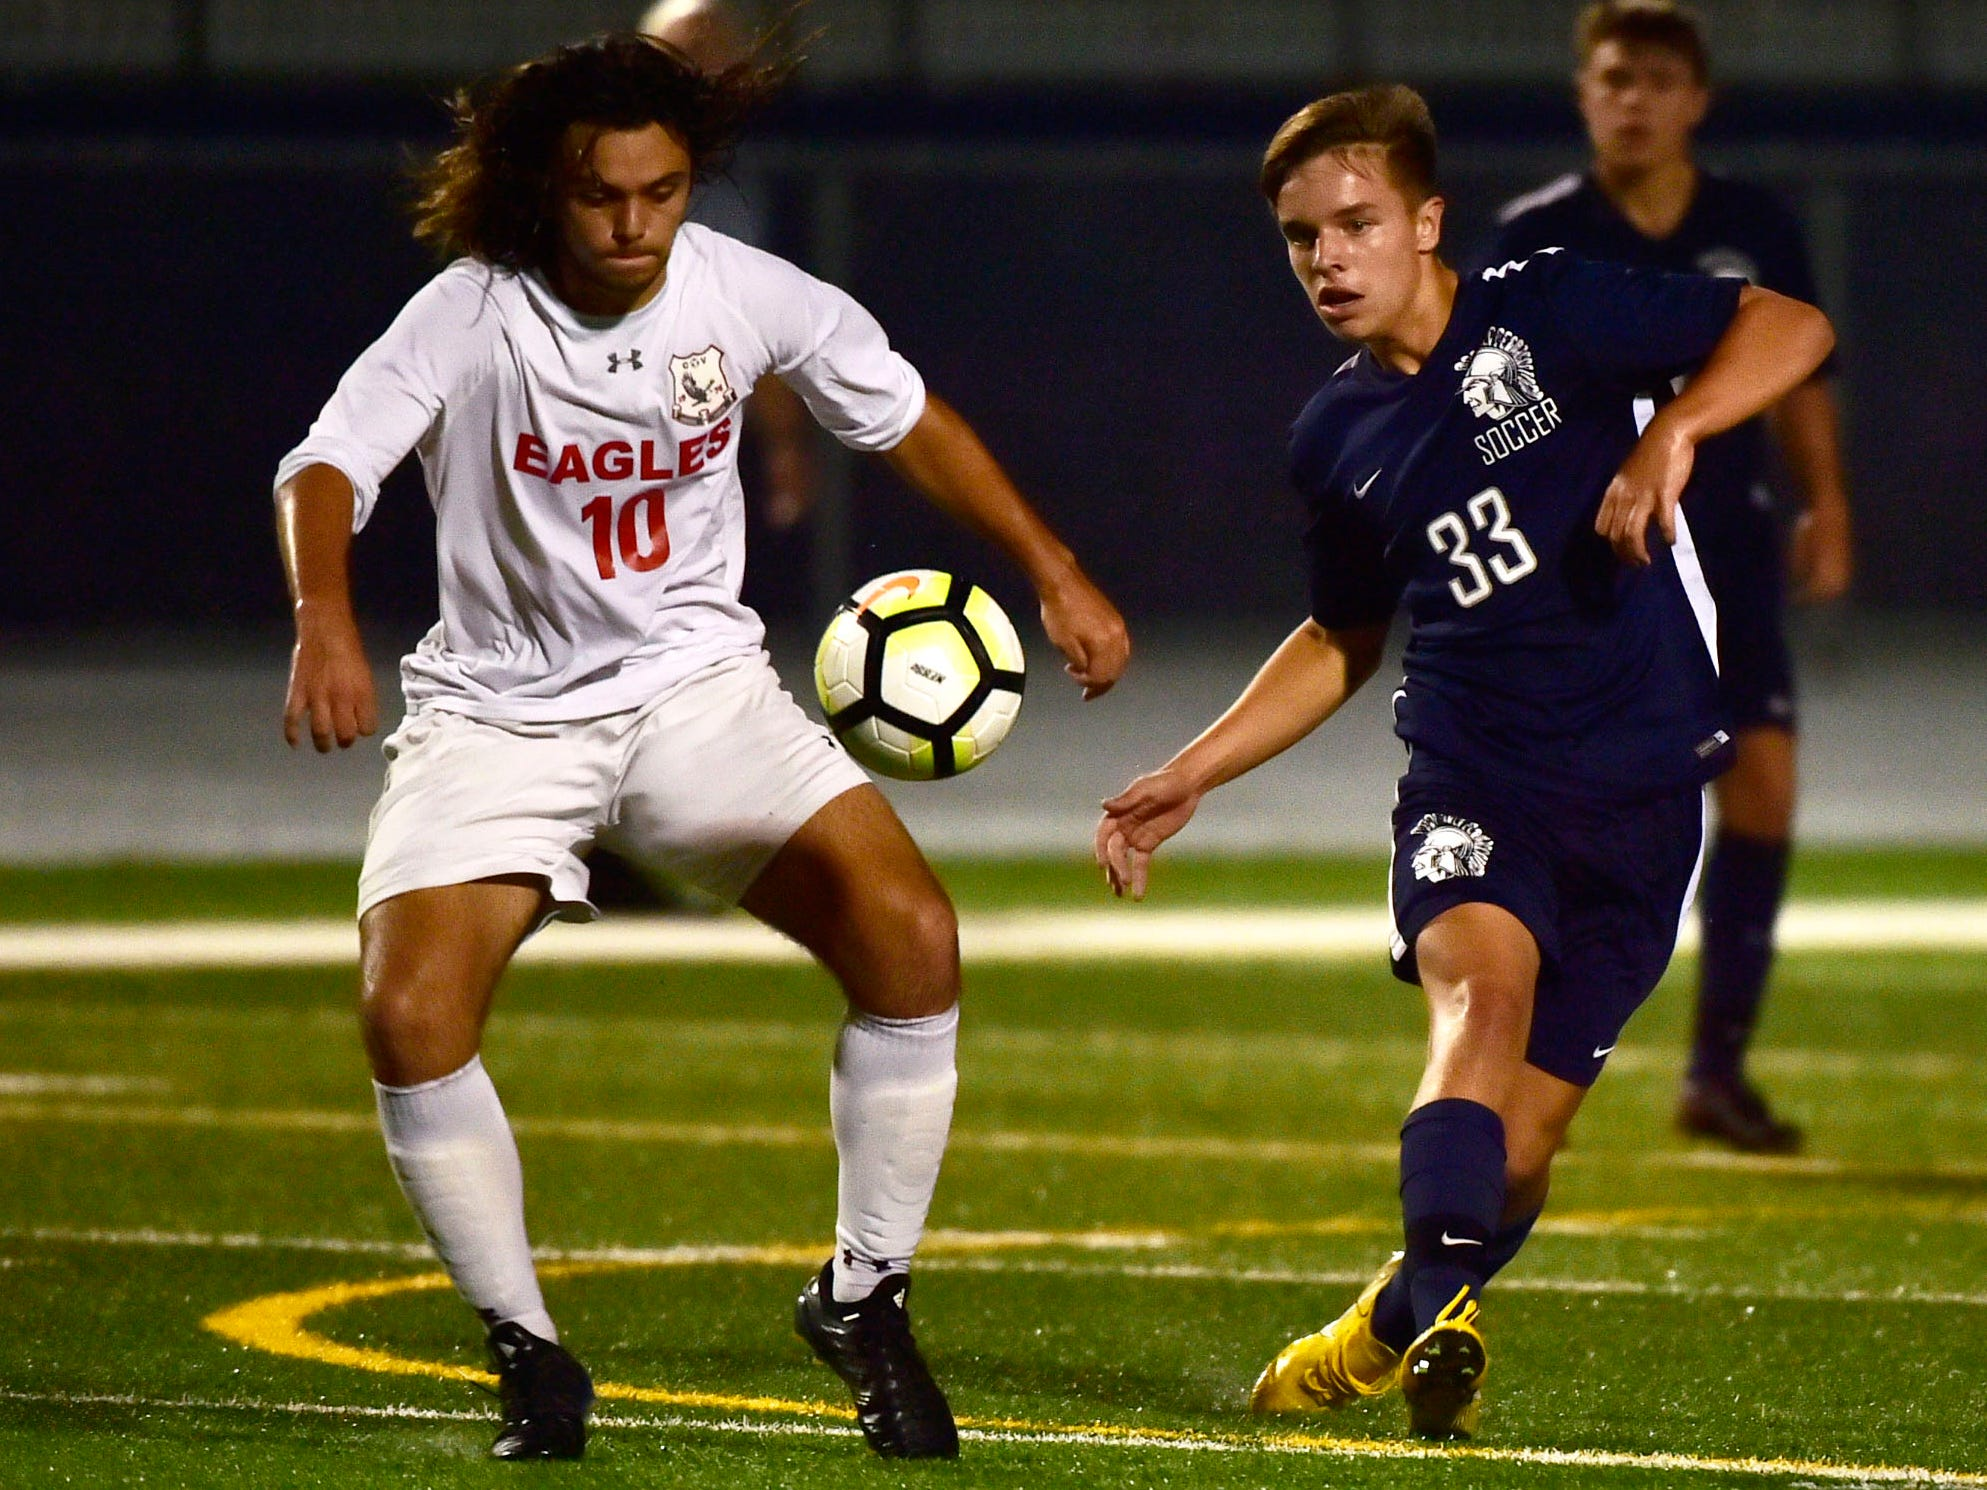 CV's Greg Congle (10) controls the ball in front of Tanner Luther (33) of Chambersburg. Chambersburg hosted Cumberland Valley in PIAA soccer on Thursday, Oct. 4, 2018, but dropped a 2-1 match in double overtime.